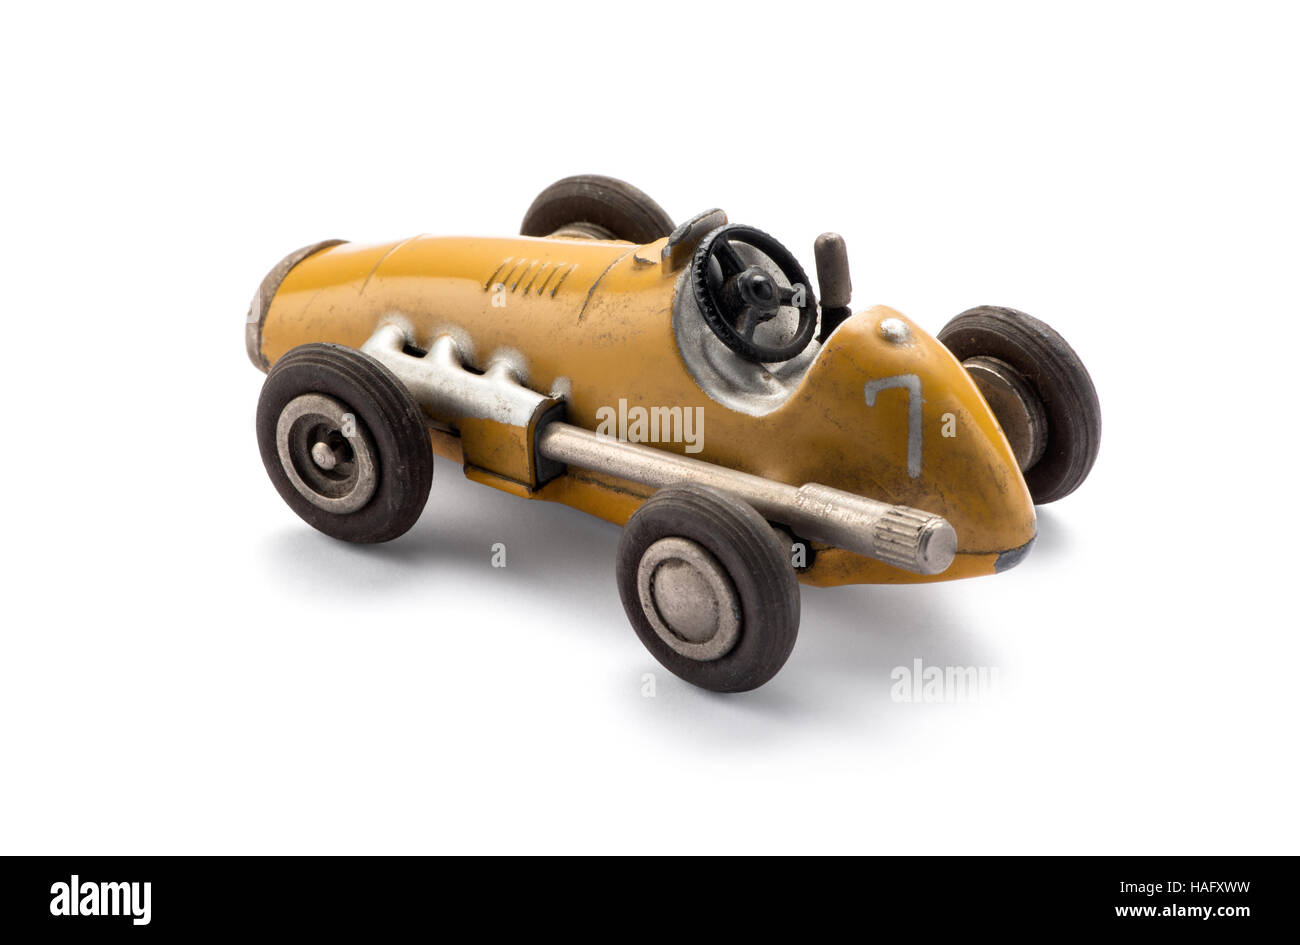 Model yellow toy vintage racing car in a side view showing the large exhaust over a white background with shadow - Stock Image